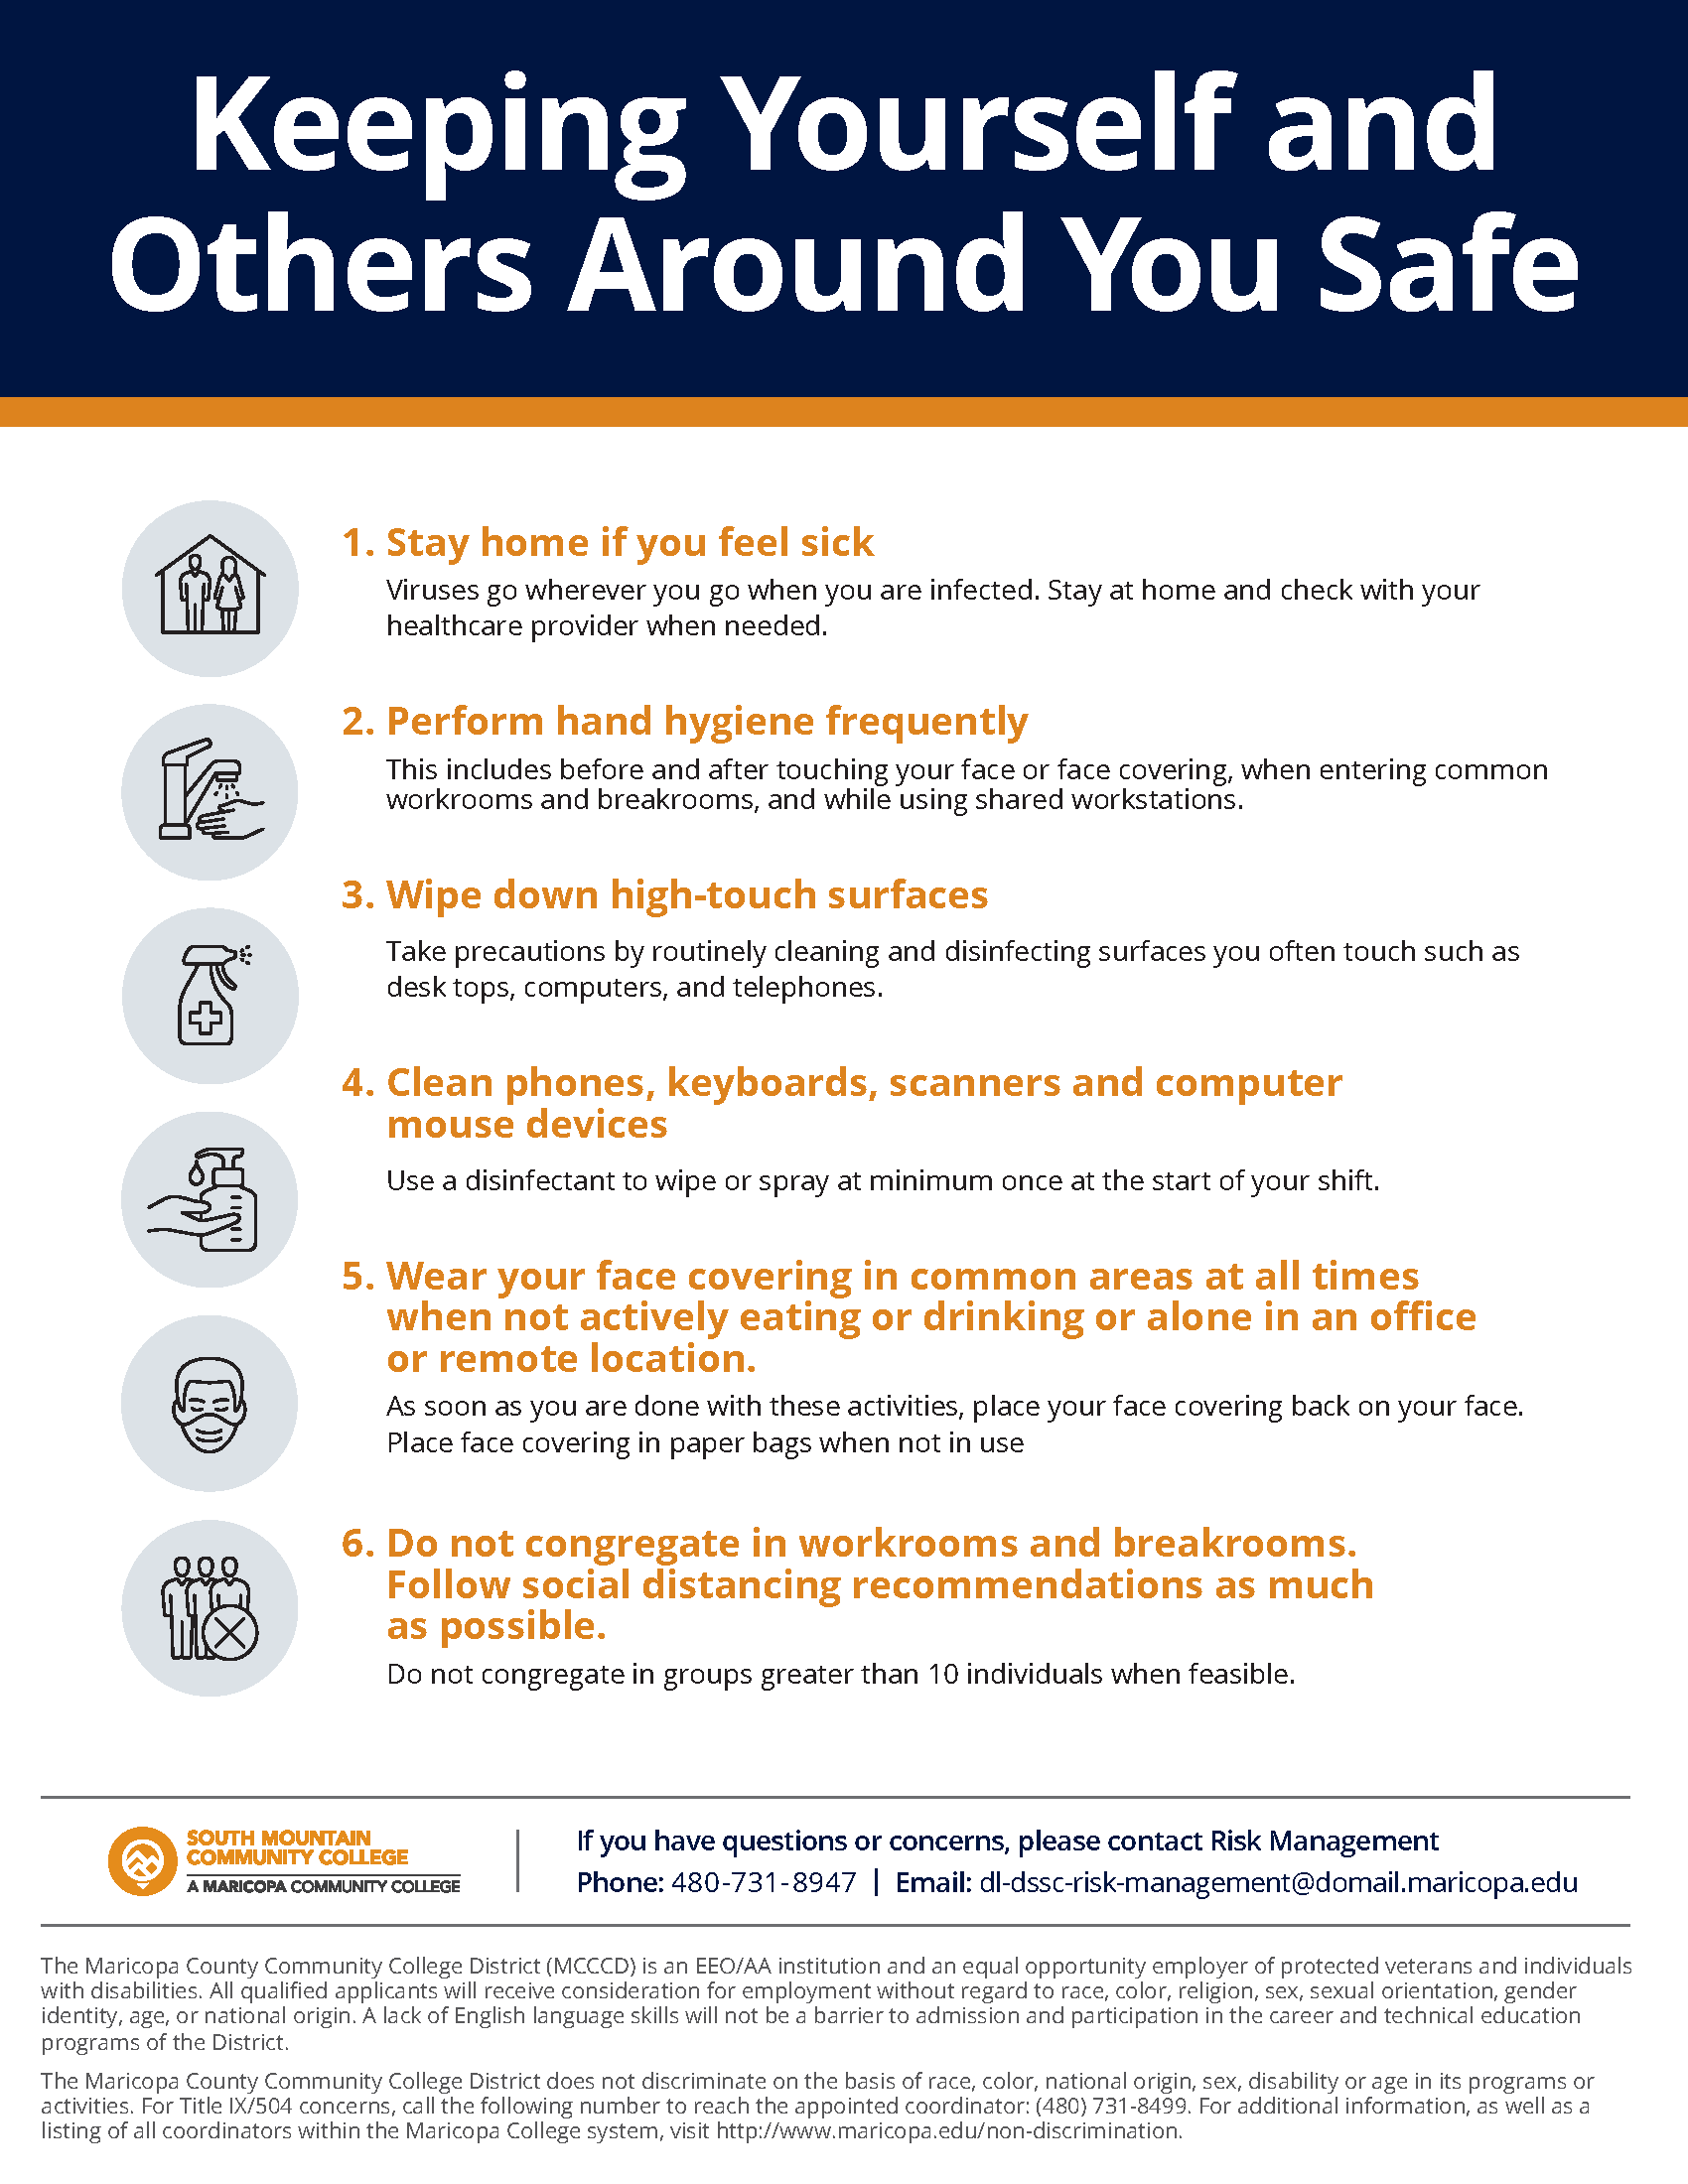 Keeping Yourself and Others Around You Safe